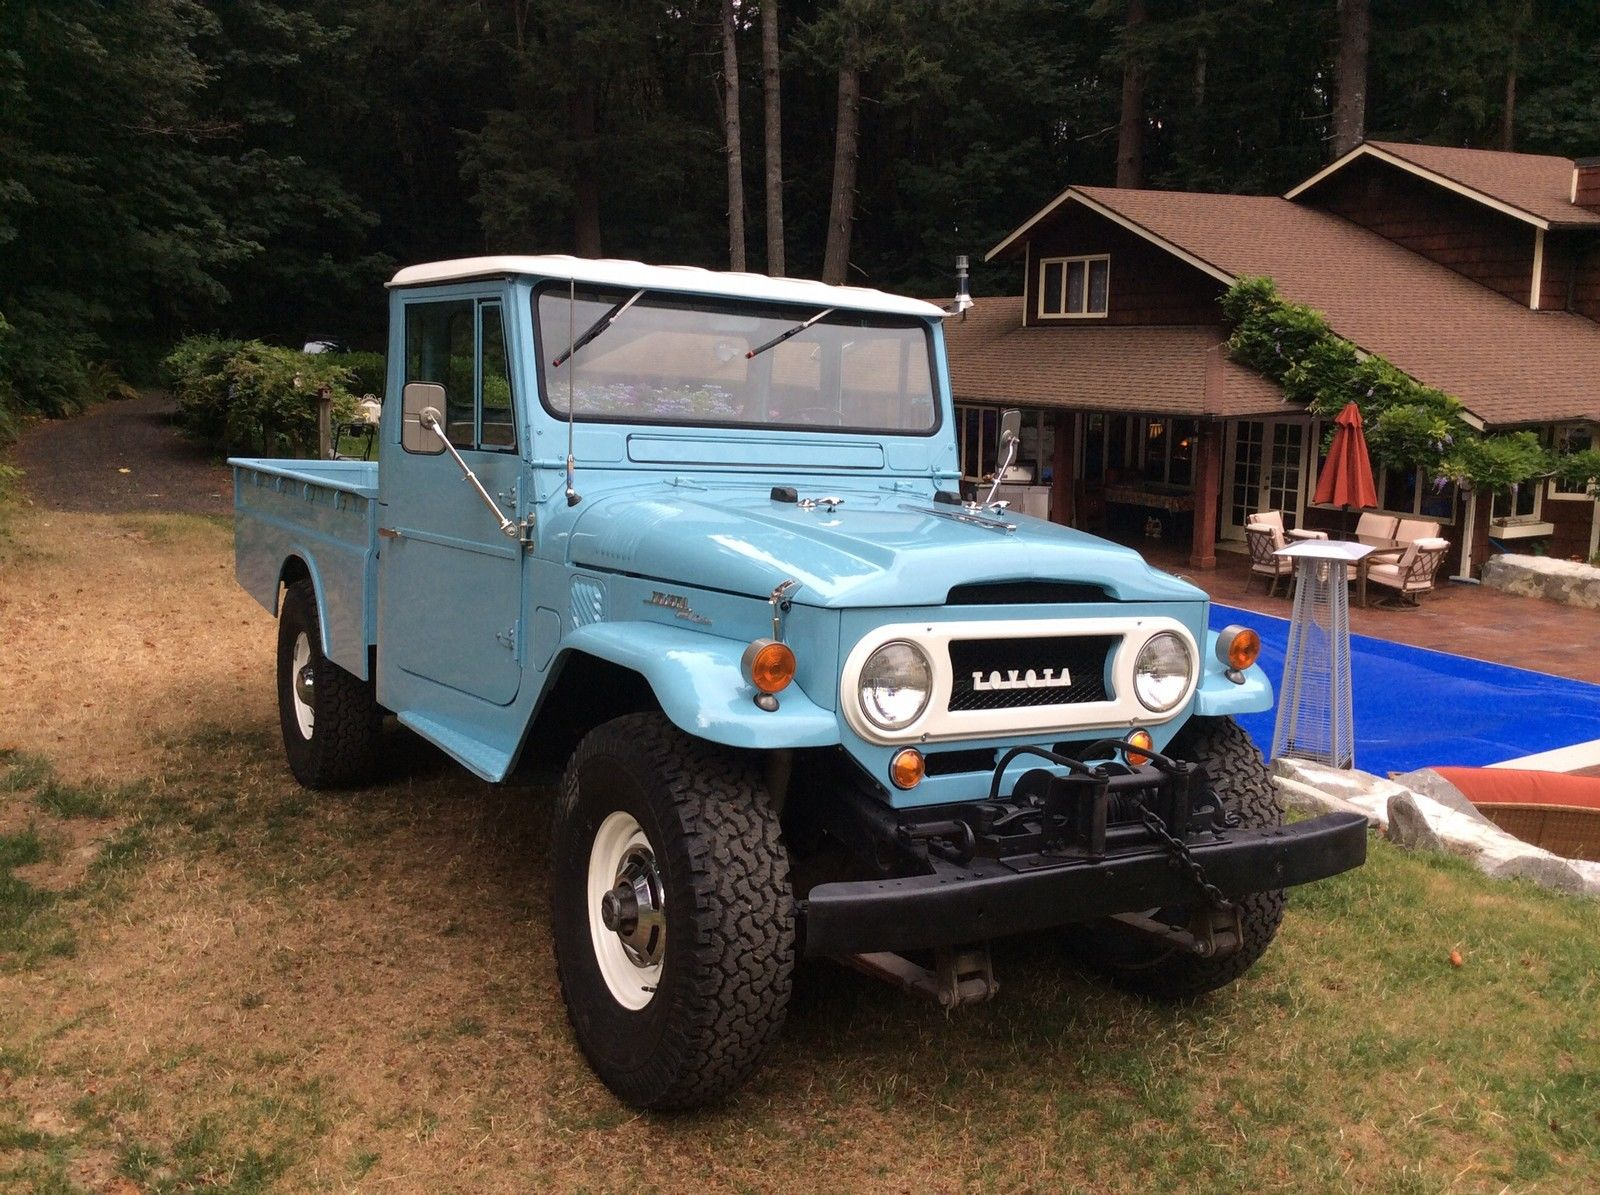 Top Condition Toyota Land Cruiser Fj45 Pickup Waiting For